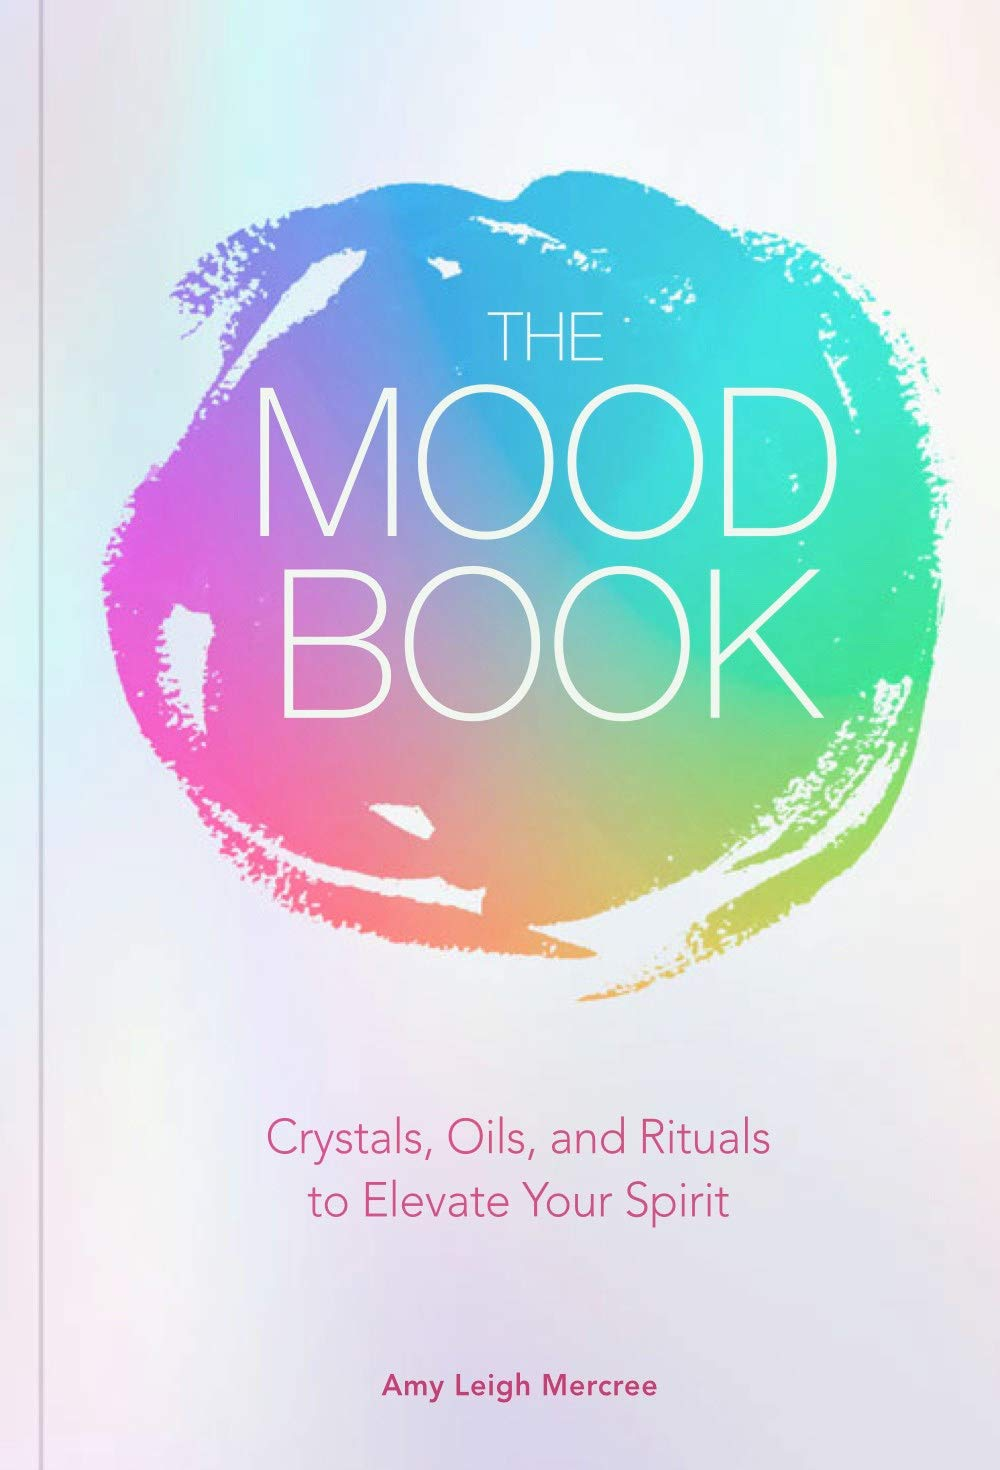 Mood Book by Amy Leigh Mercree